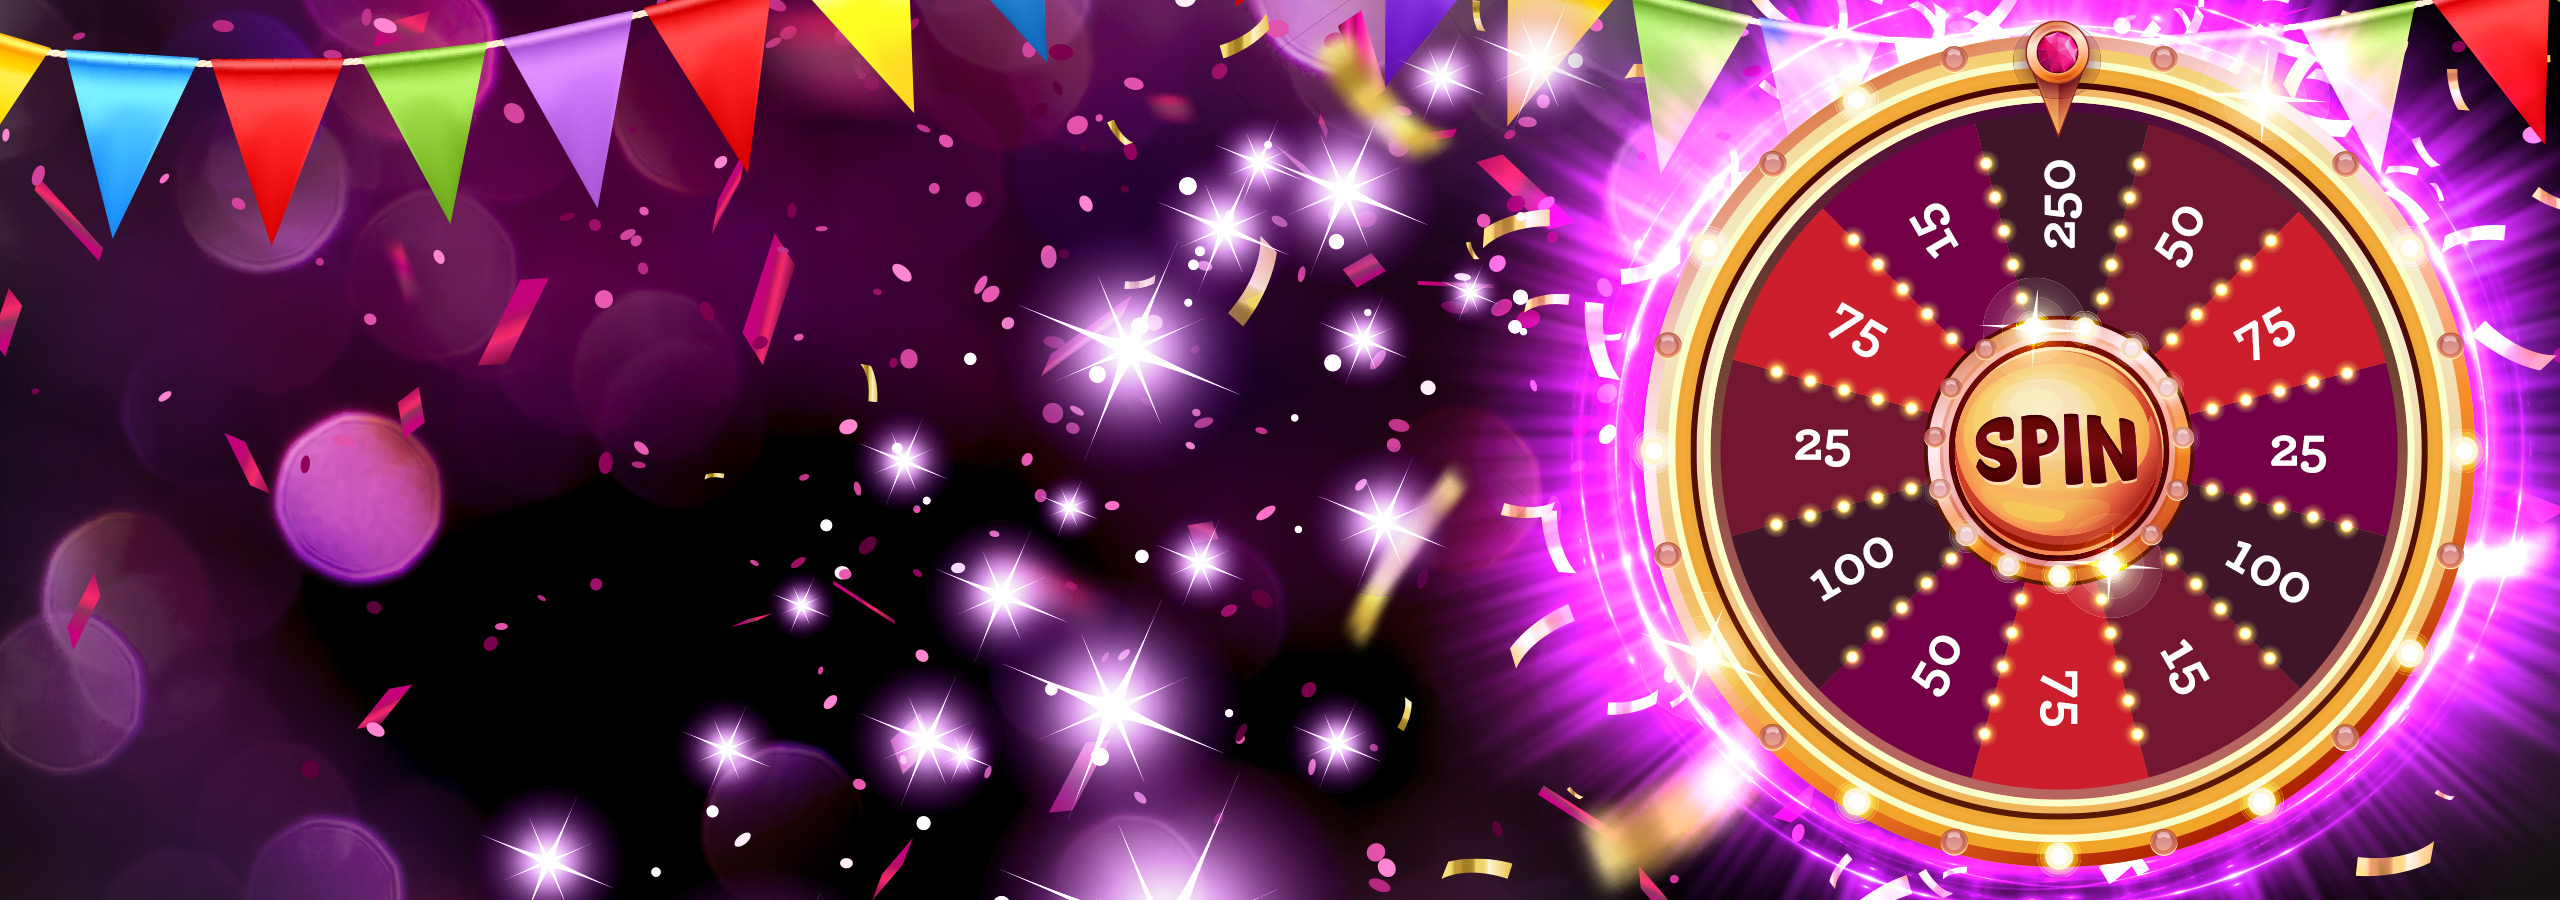 **100% BONUS UP TO £200**  **ALSO**  **SPIN THE WHEEL GRAB THE FORTUNE!** (Up to 250 extra spins)